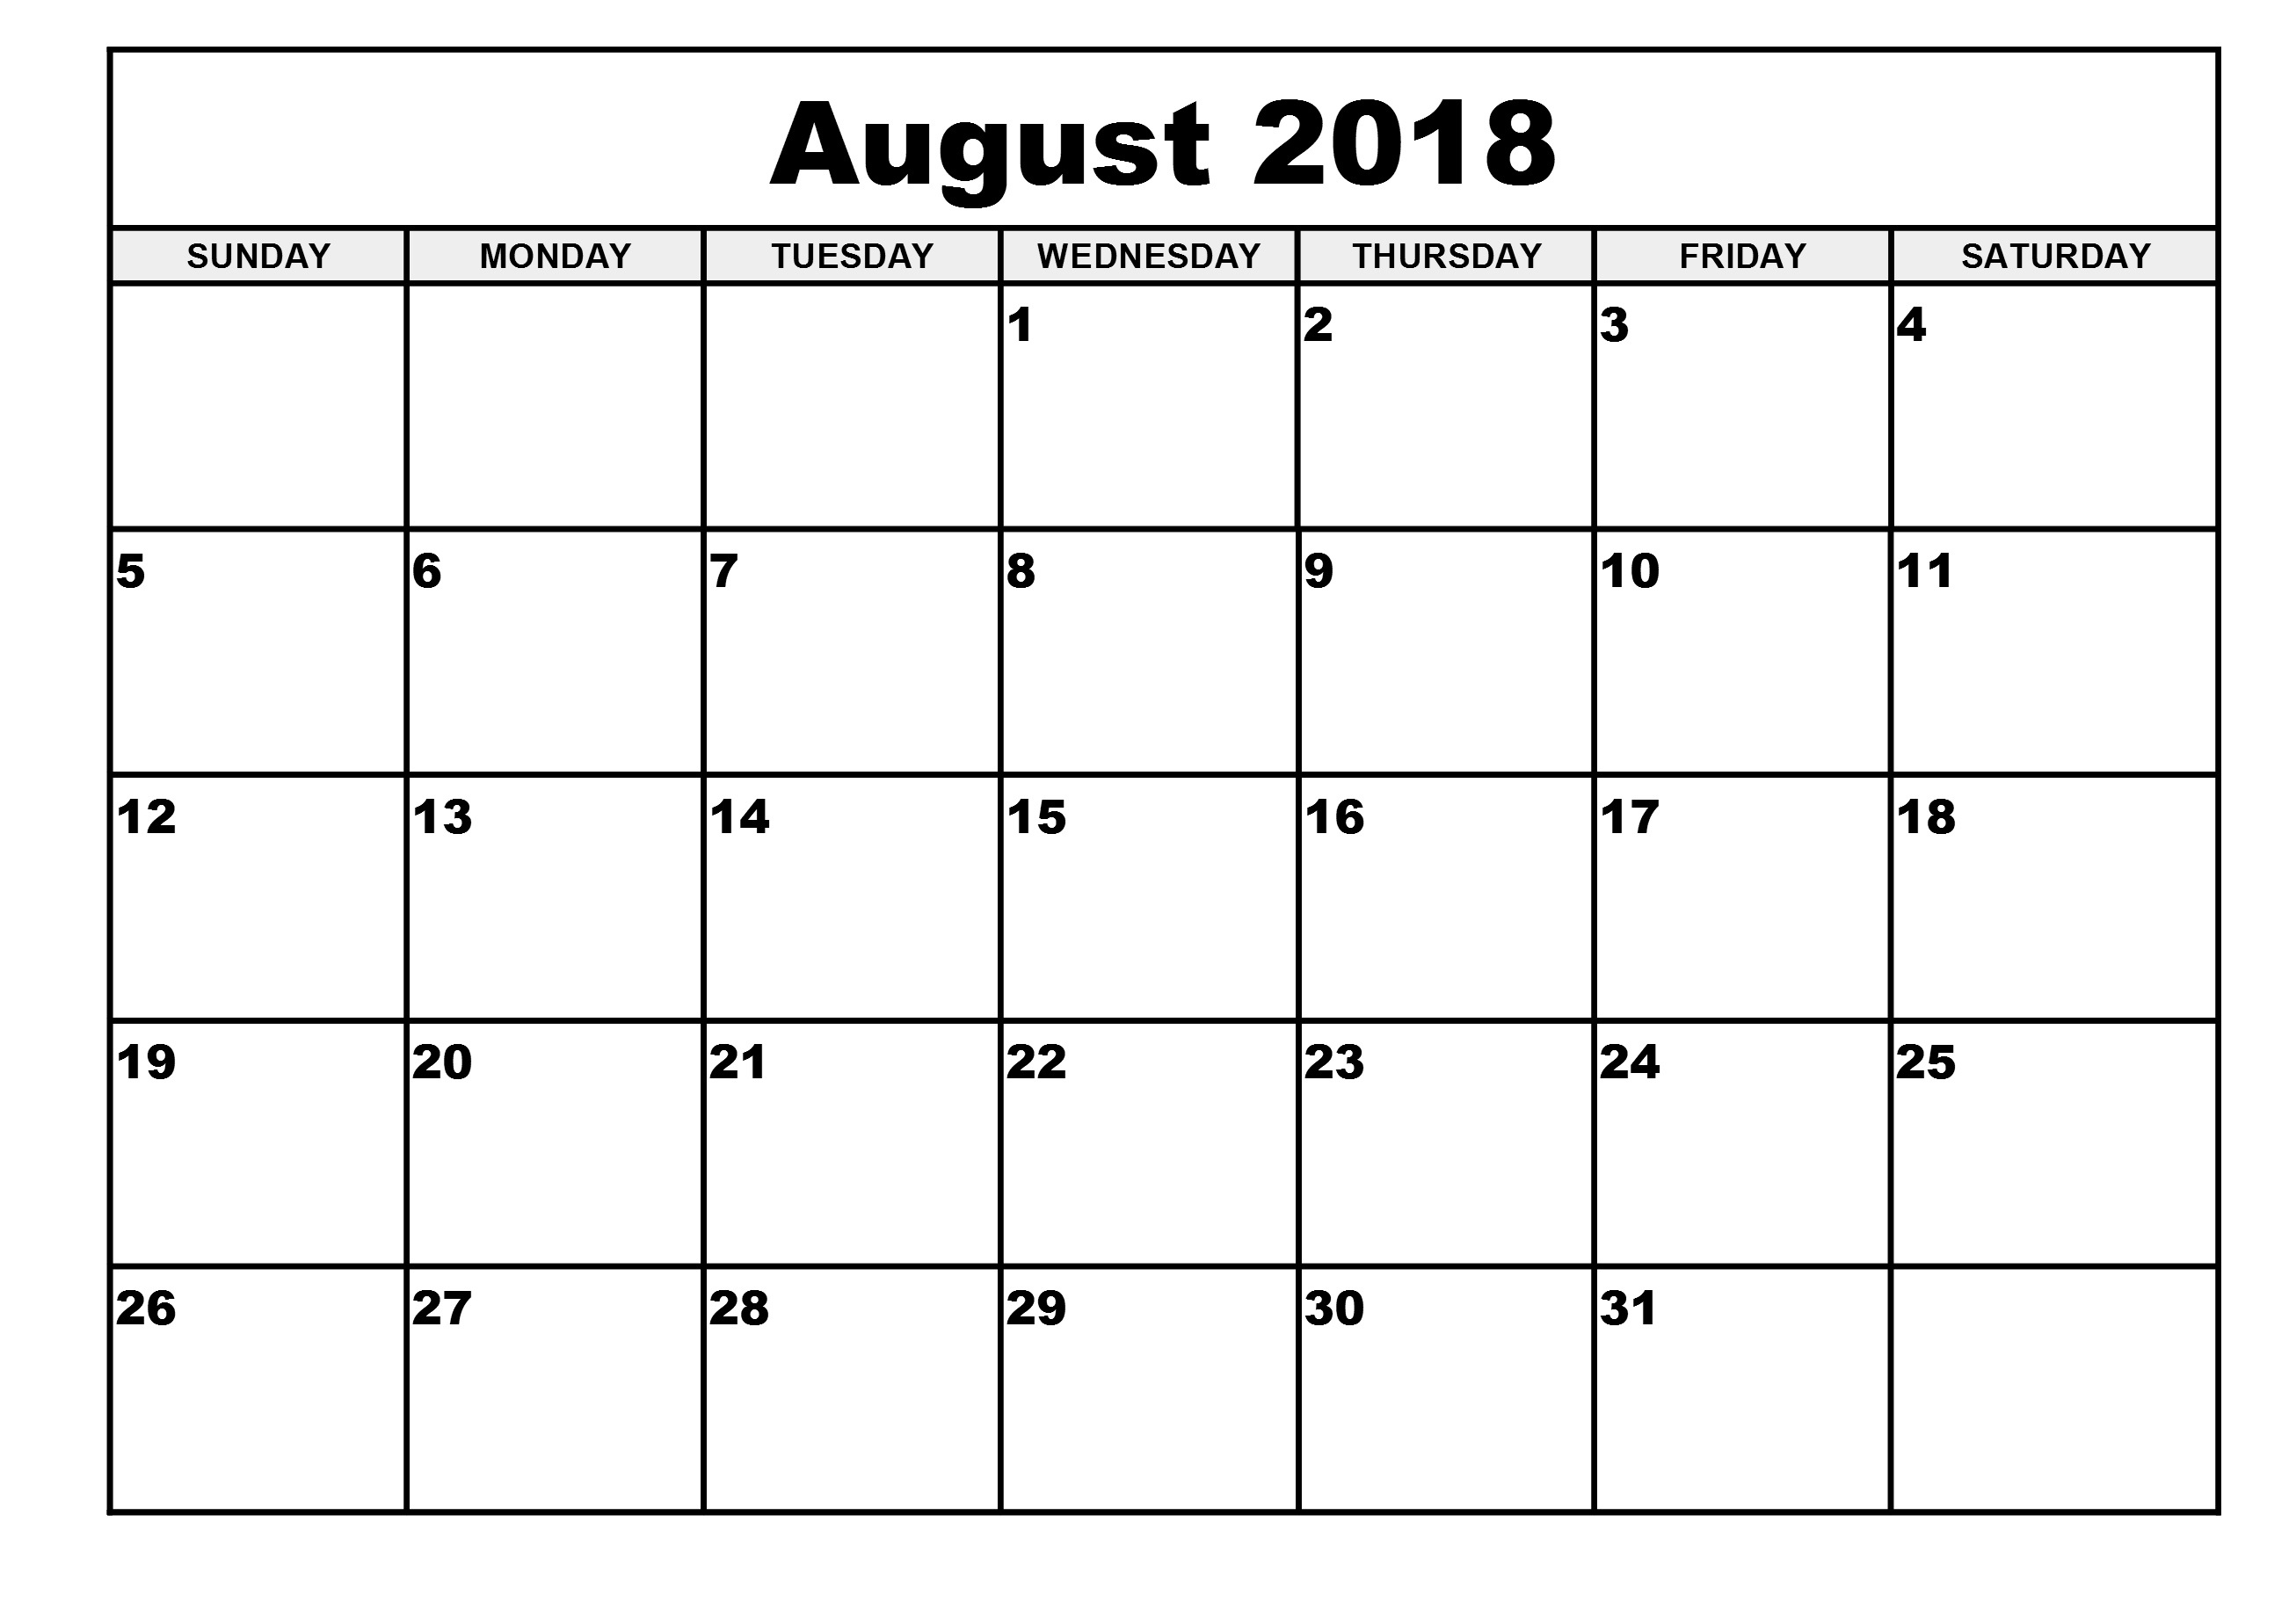 printable monthly calendar templates august 2018 Depo Provera Printable Calendar 2018 August erdferdf